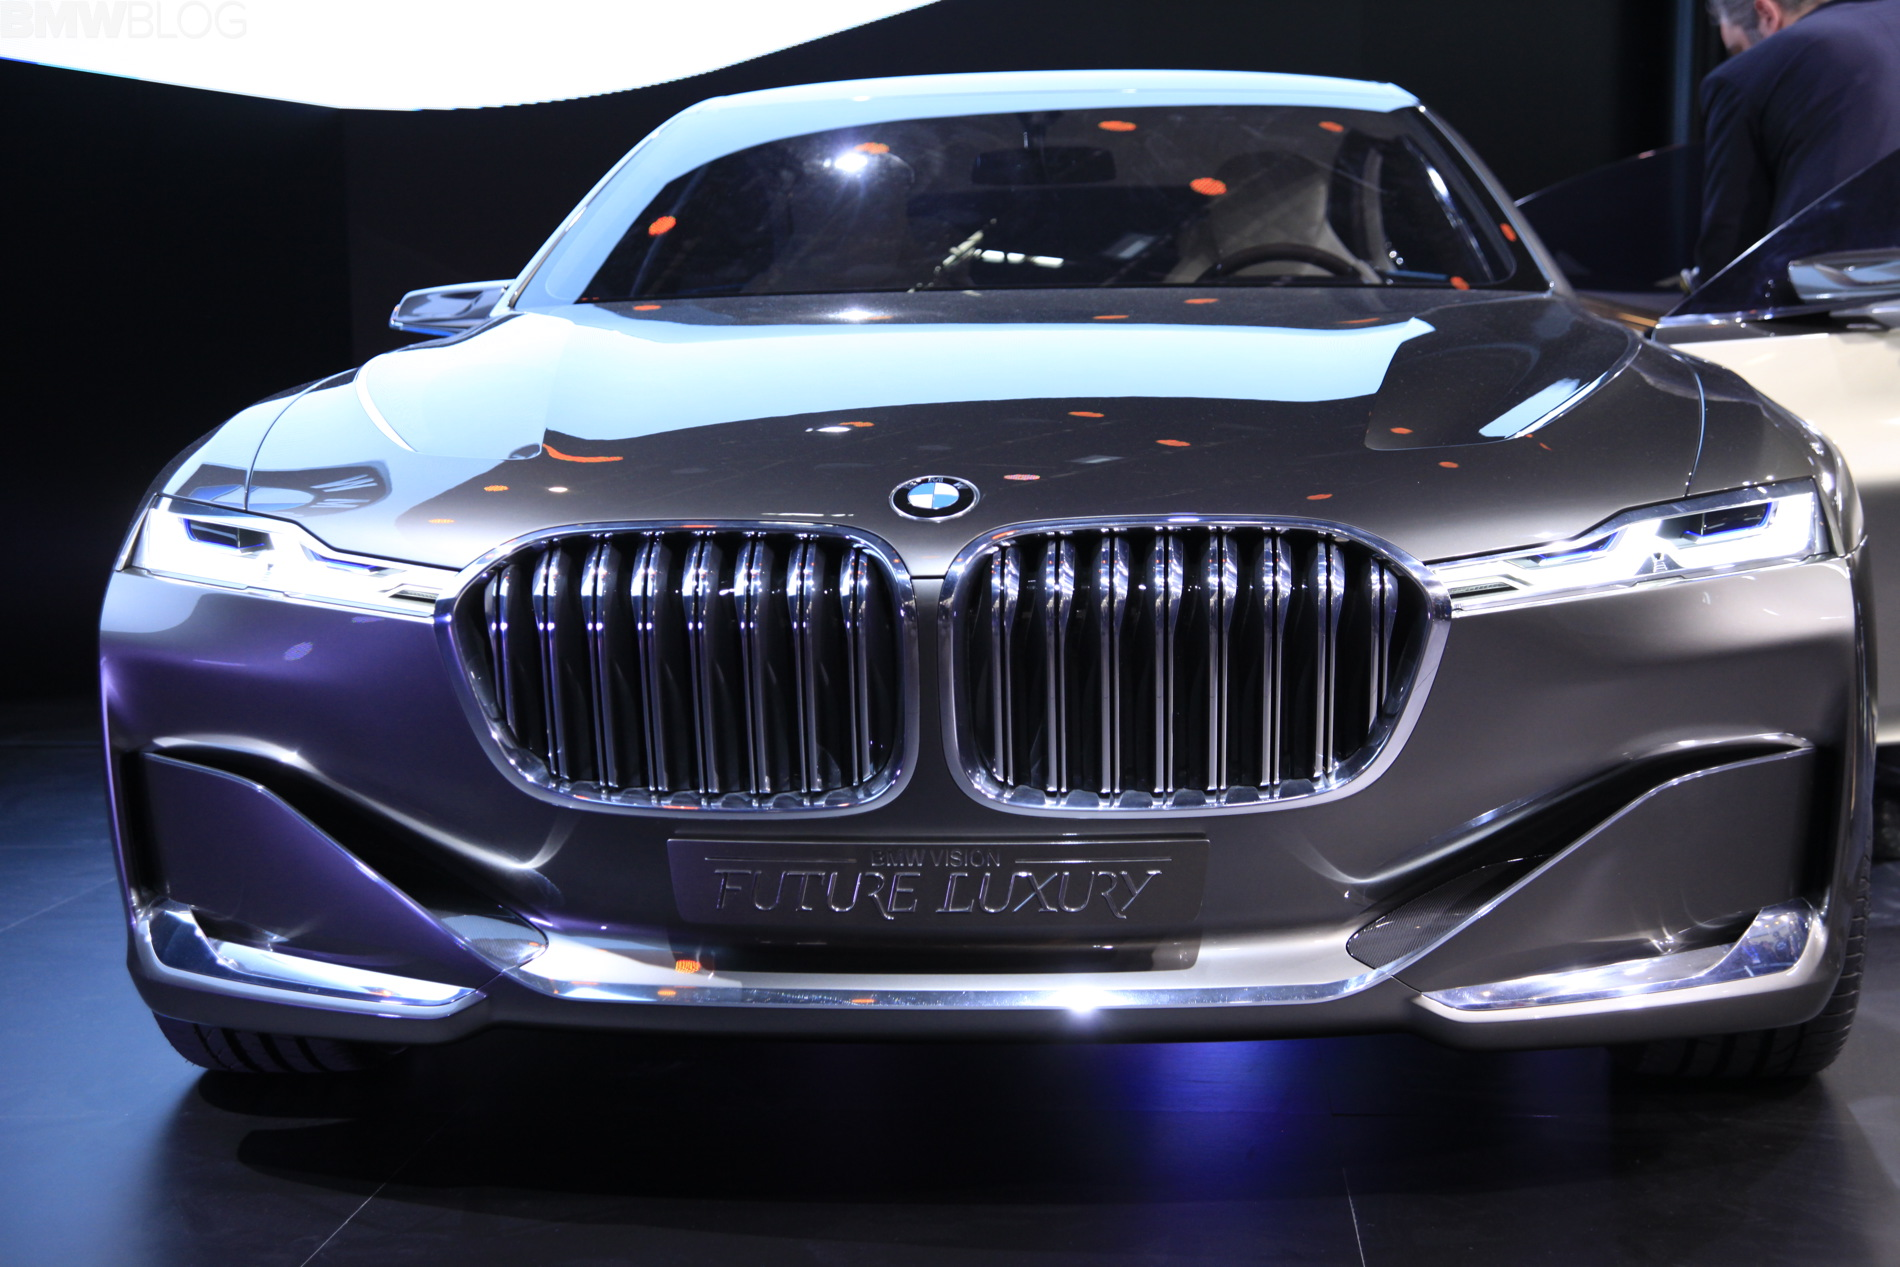 HQ 2014 Bmw Vision Future Luxury Concept Wallpapers   File 481.38Kb